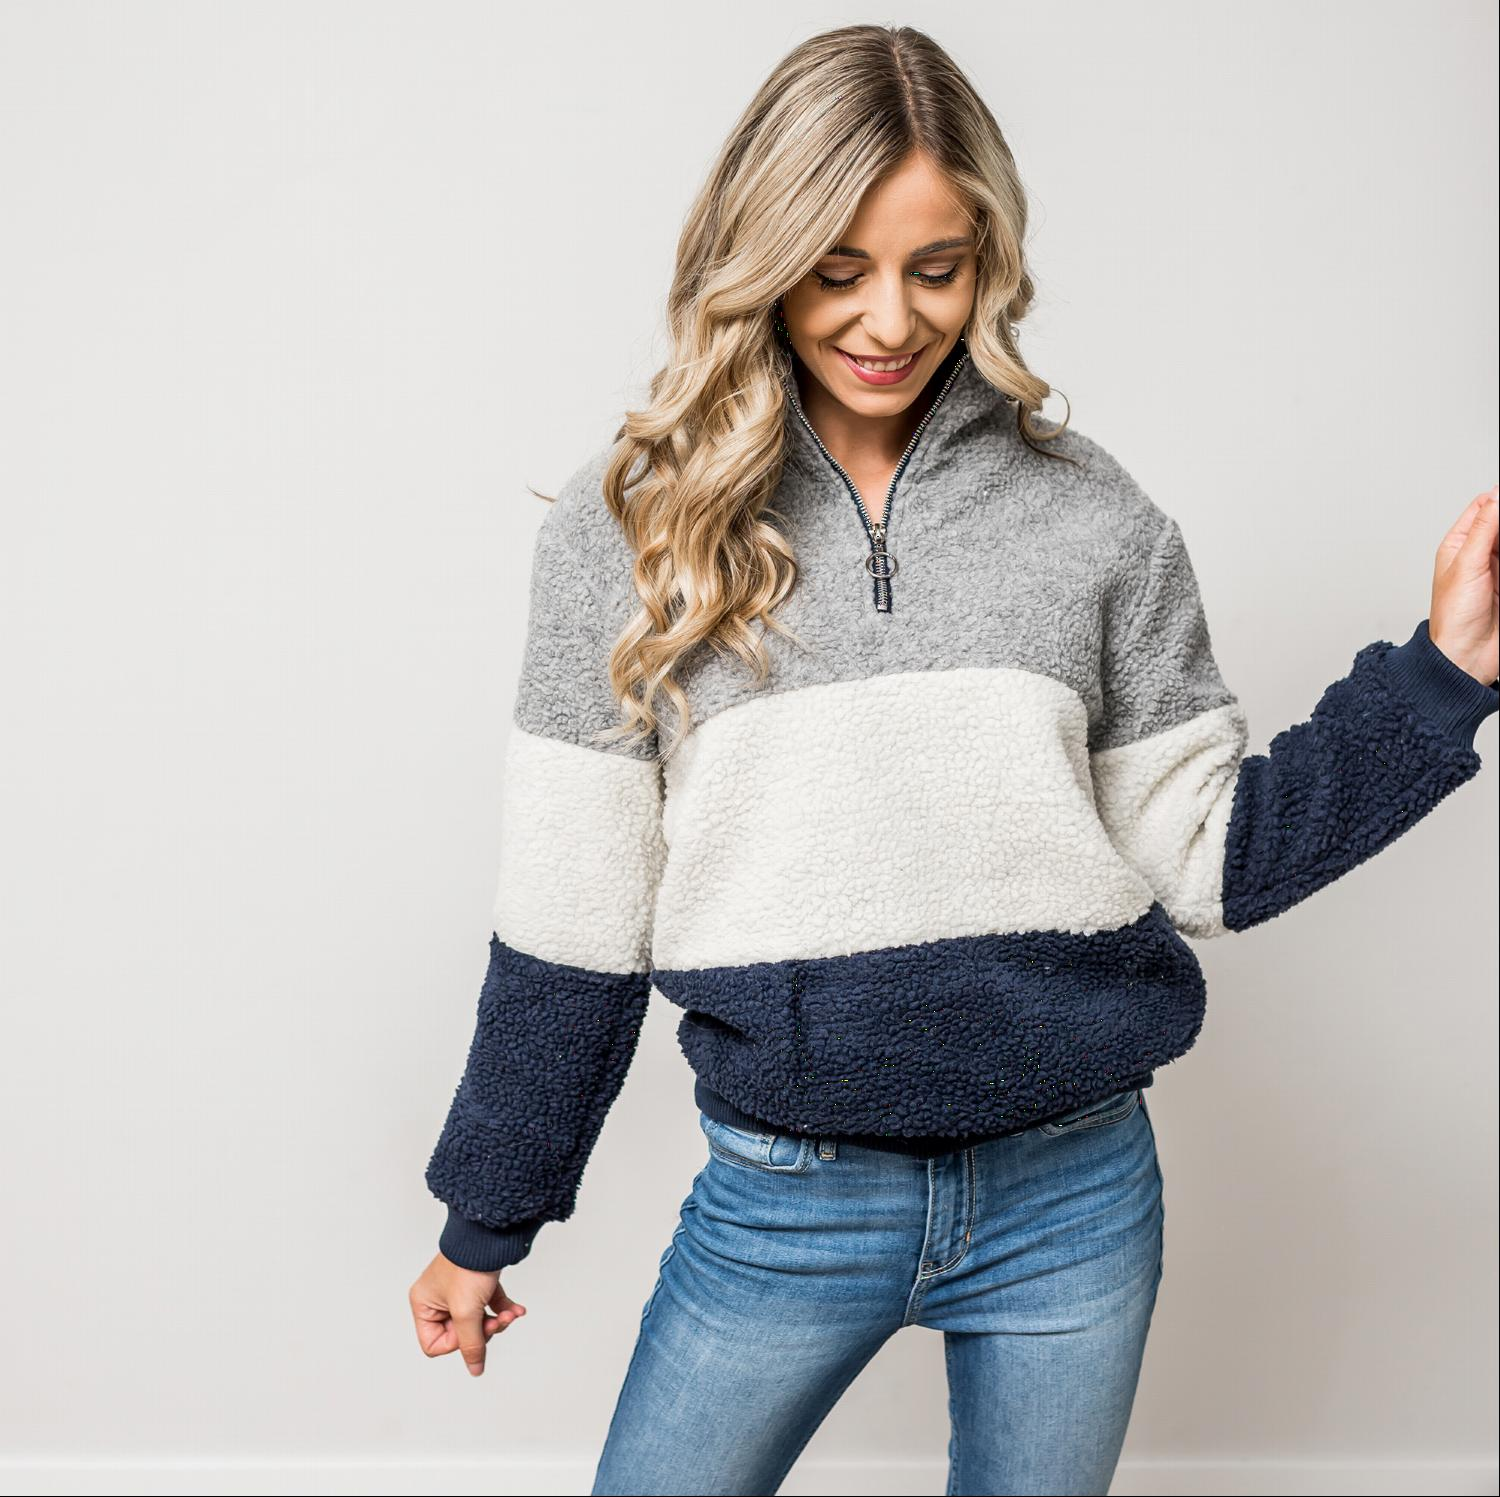 Grey SHERPA COLORBLOCK ZIPPERED MOCK NECK PULLOVER JACKET